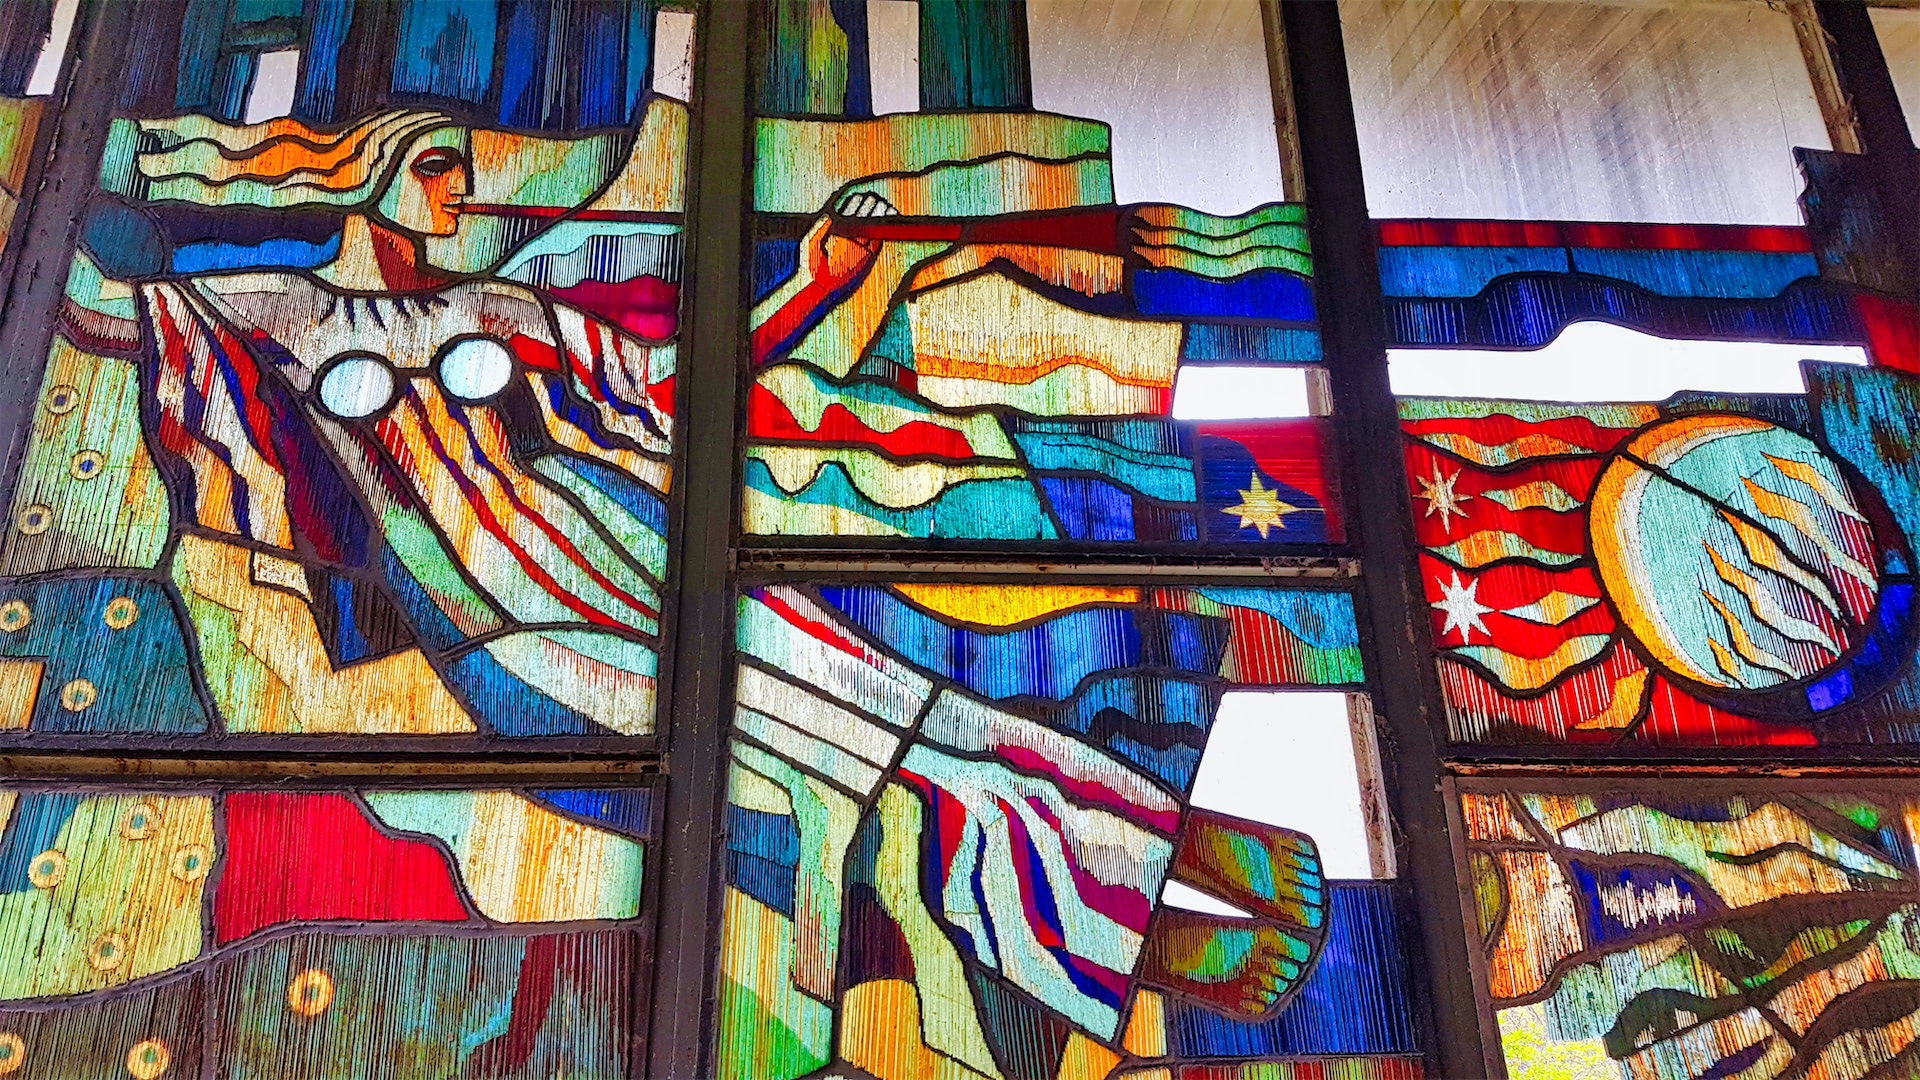 chernobyl pripyat interior stained glass reclining image